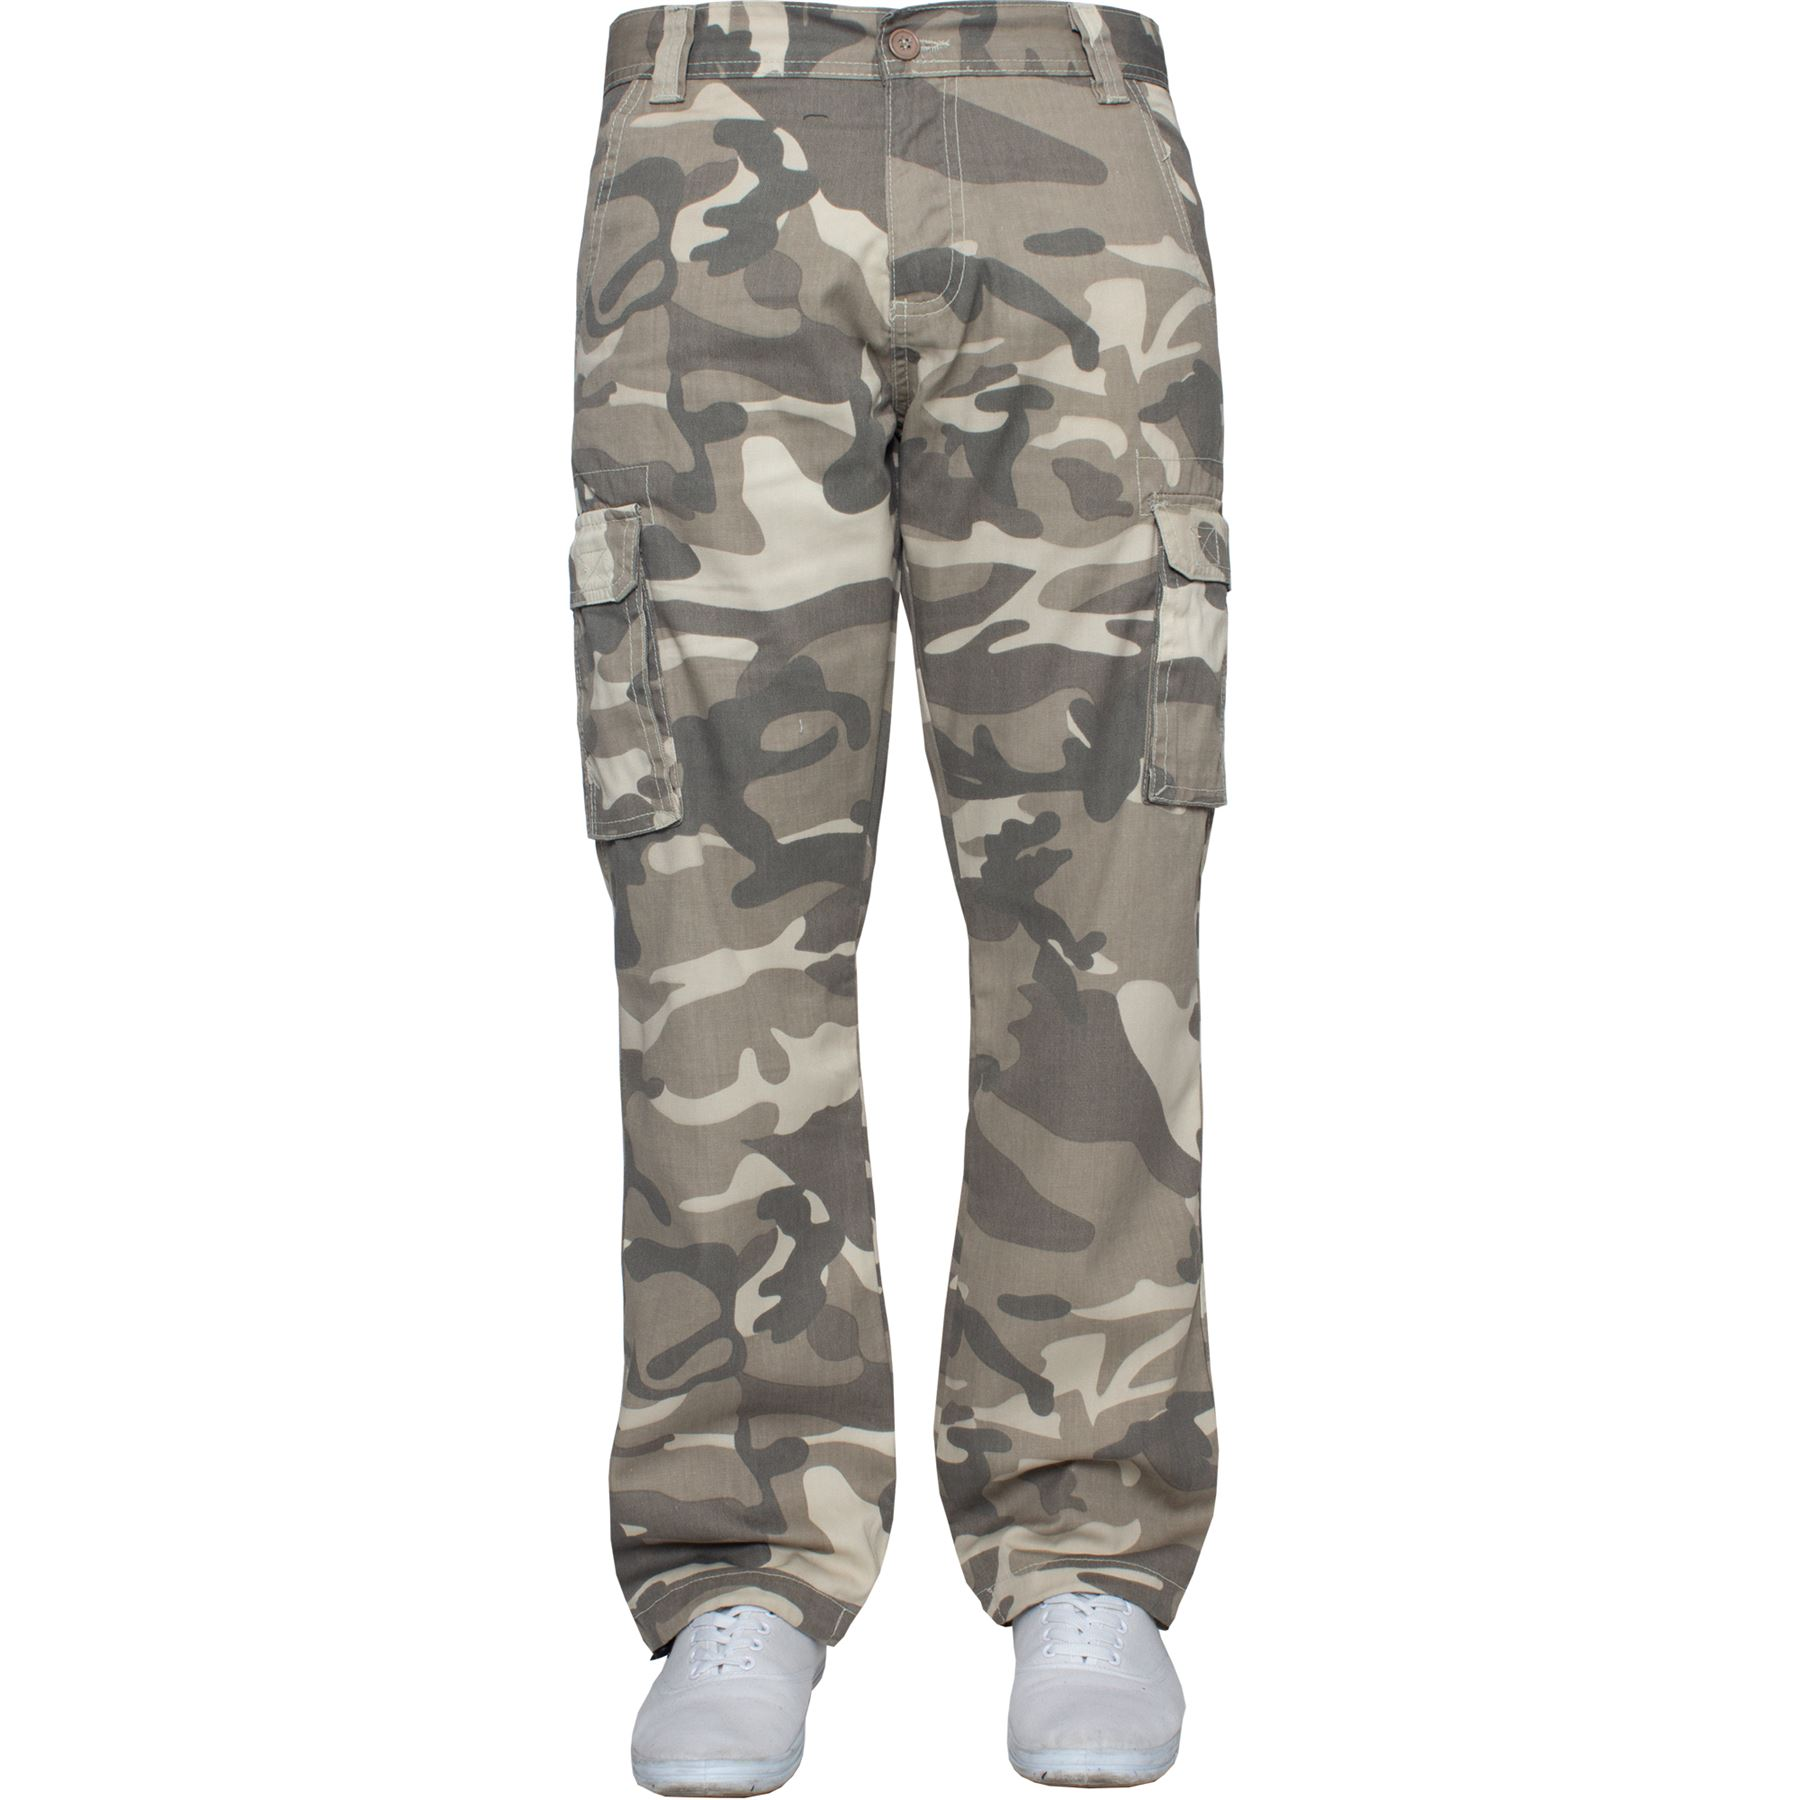 Kruze-Mens-Military-Combat-Trousers-Camouflage-Cargo-Camo-Army-Casual-Work-Pants thumbnail 6